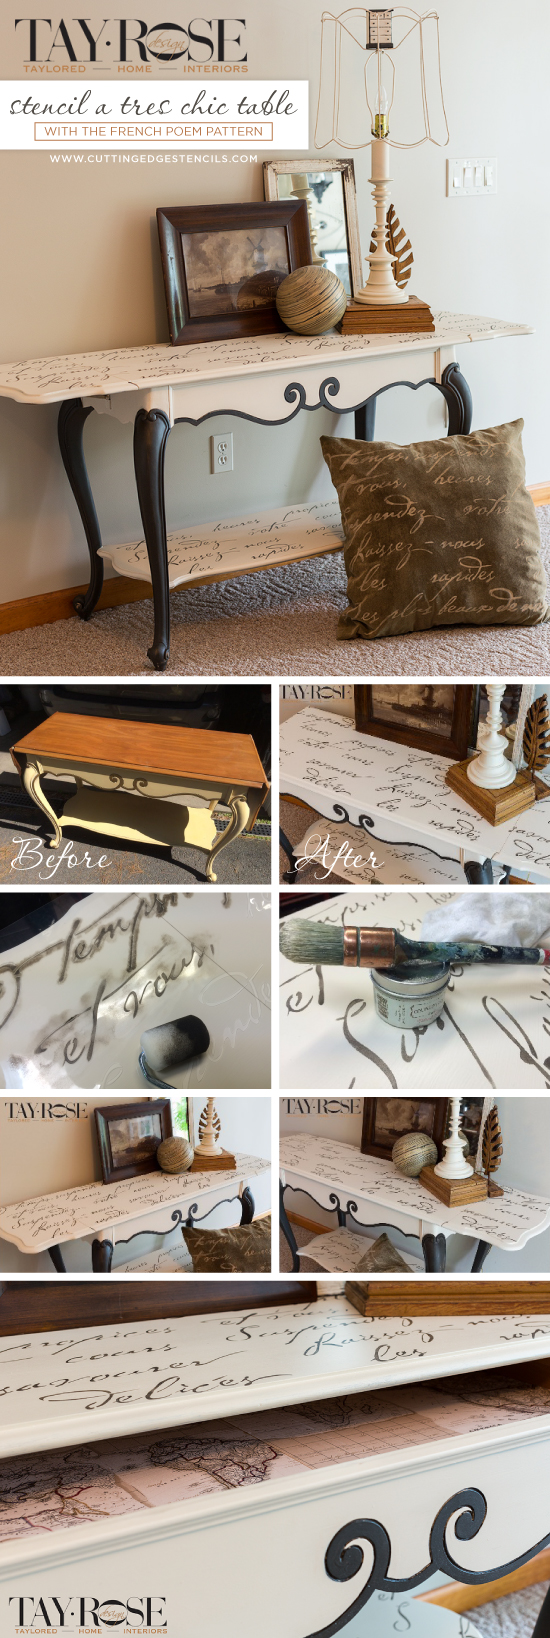 Cutting Edge Stencils shares a DIY stenciled sofa table using the French Poem Allover Stencil. http://www.cuttingedgestencils.com/french-poem-typography-letter-stencil.html